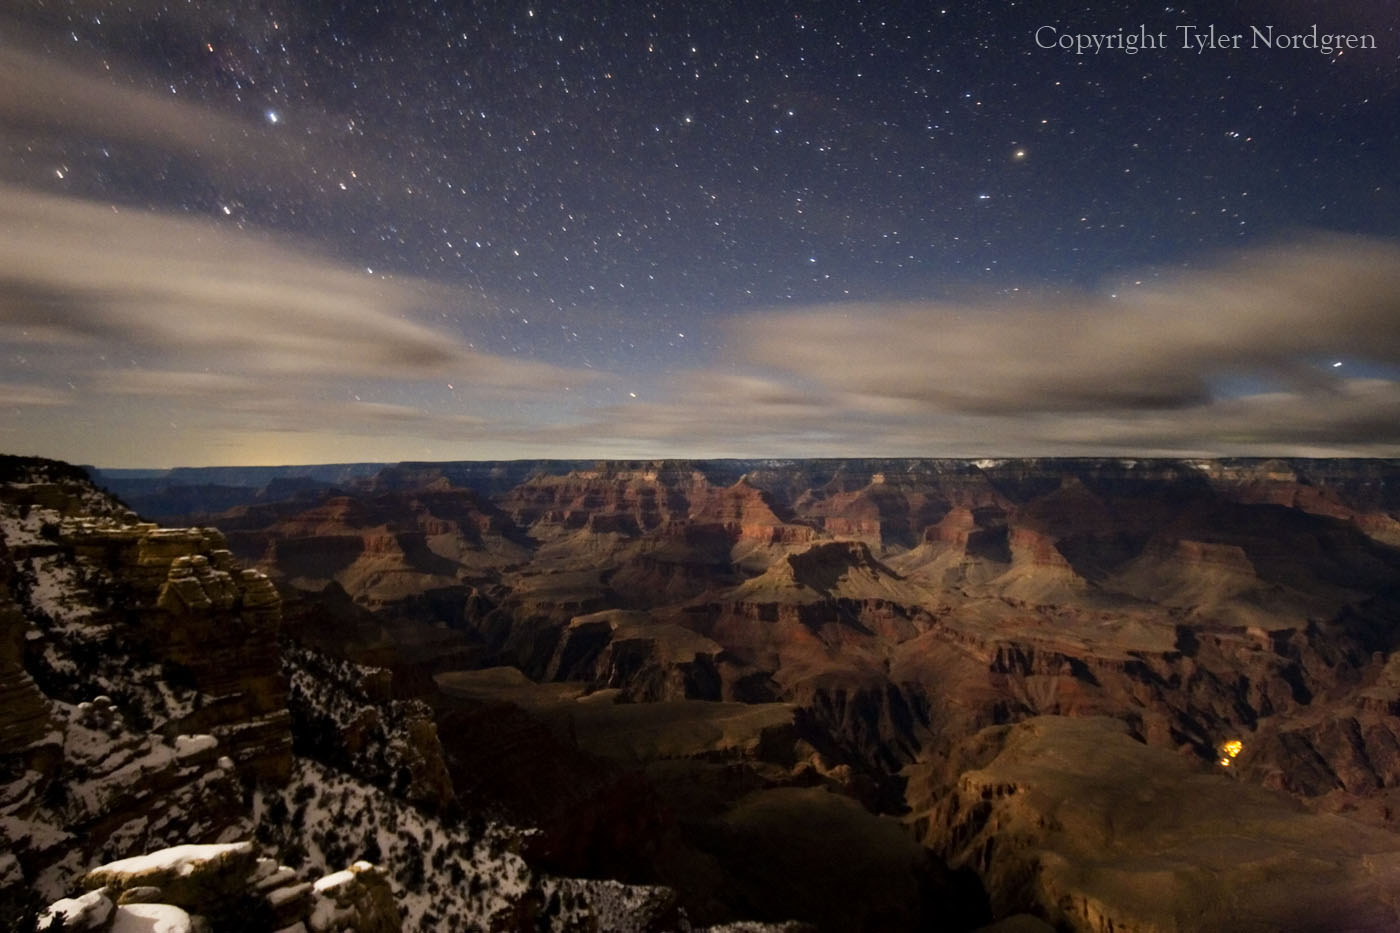 Encyclopedia: Grand Canyon at Night